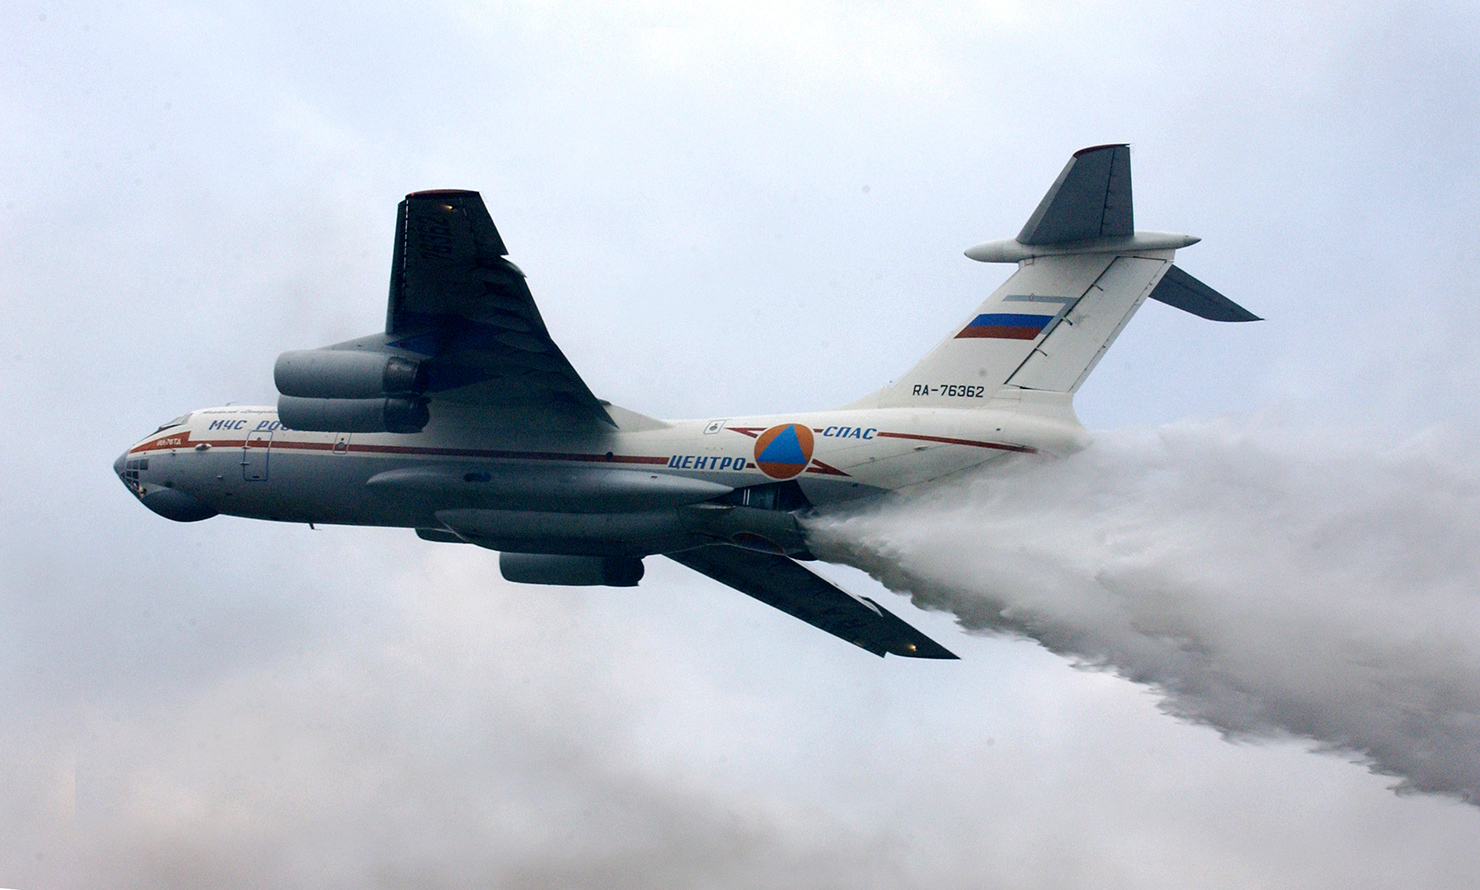 The Il-76 is capable of dropping over 42 tons of water on wildfires at a time and is the world's largest fire-fighting plane.